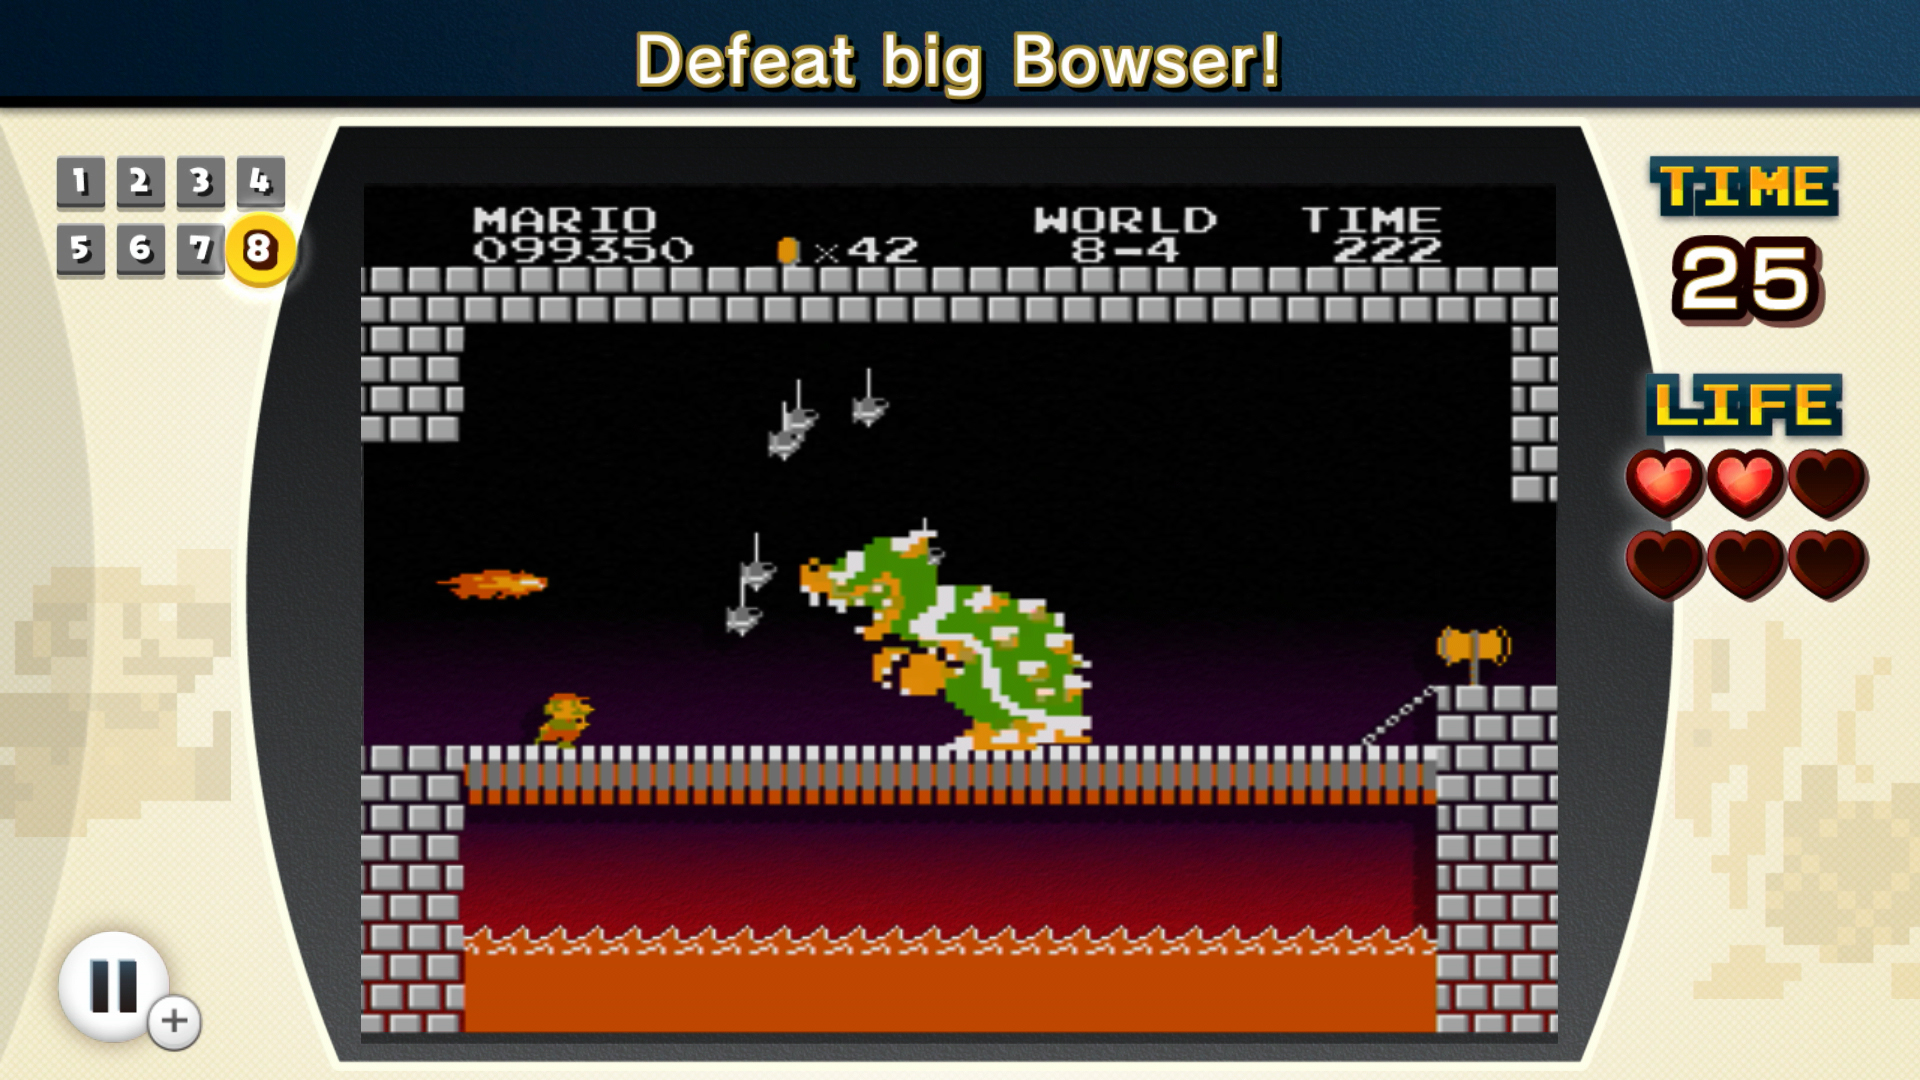 https://i1.wp.com/www.wired.com/images_blogs/gamelife/2014/01/WiiU_NesRemix_BigBowser-copy.jpg